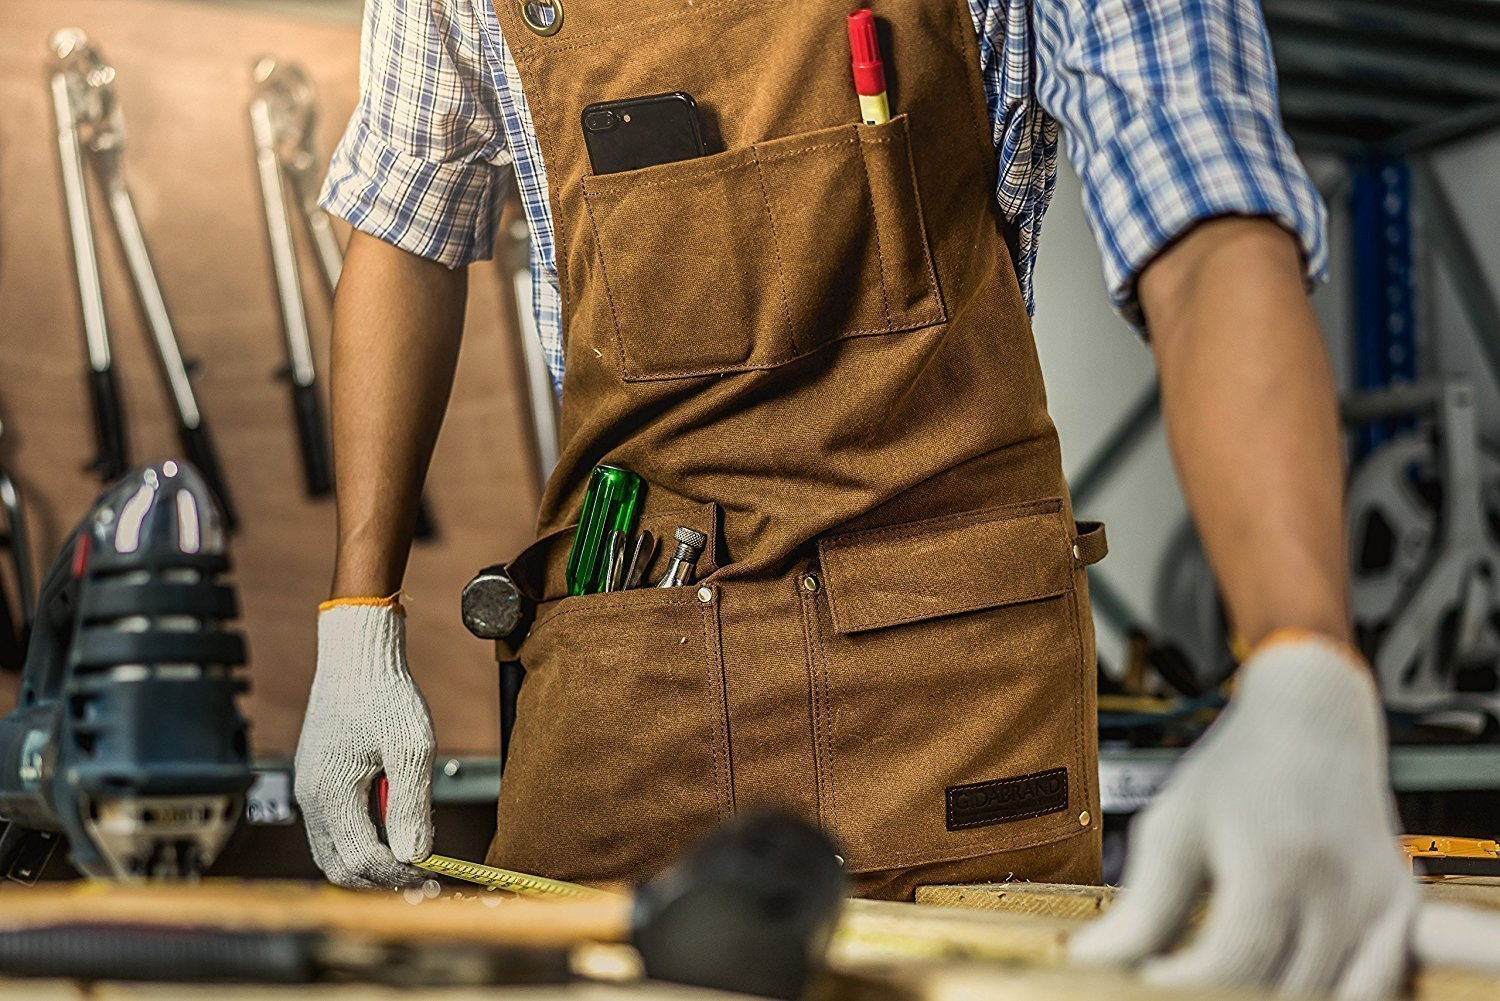 Luxury Waxed Canvas Shop Apron | Heavy Duty Work Apron for Men & Women with Pocket & Cross-Back Straps | Adjustable Tool Apron Up To XXL | Long, Thick, Water Resistant Workshop Apron in Gift Box by GIDABRAND (Image #2)